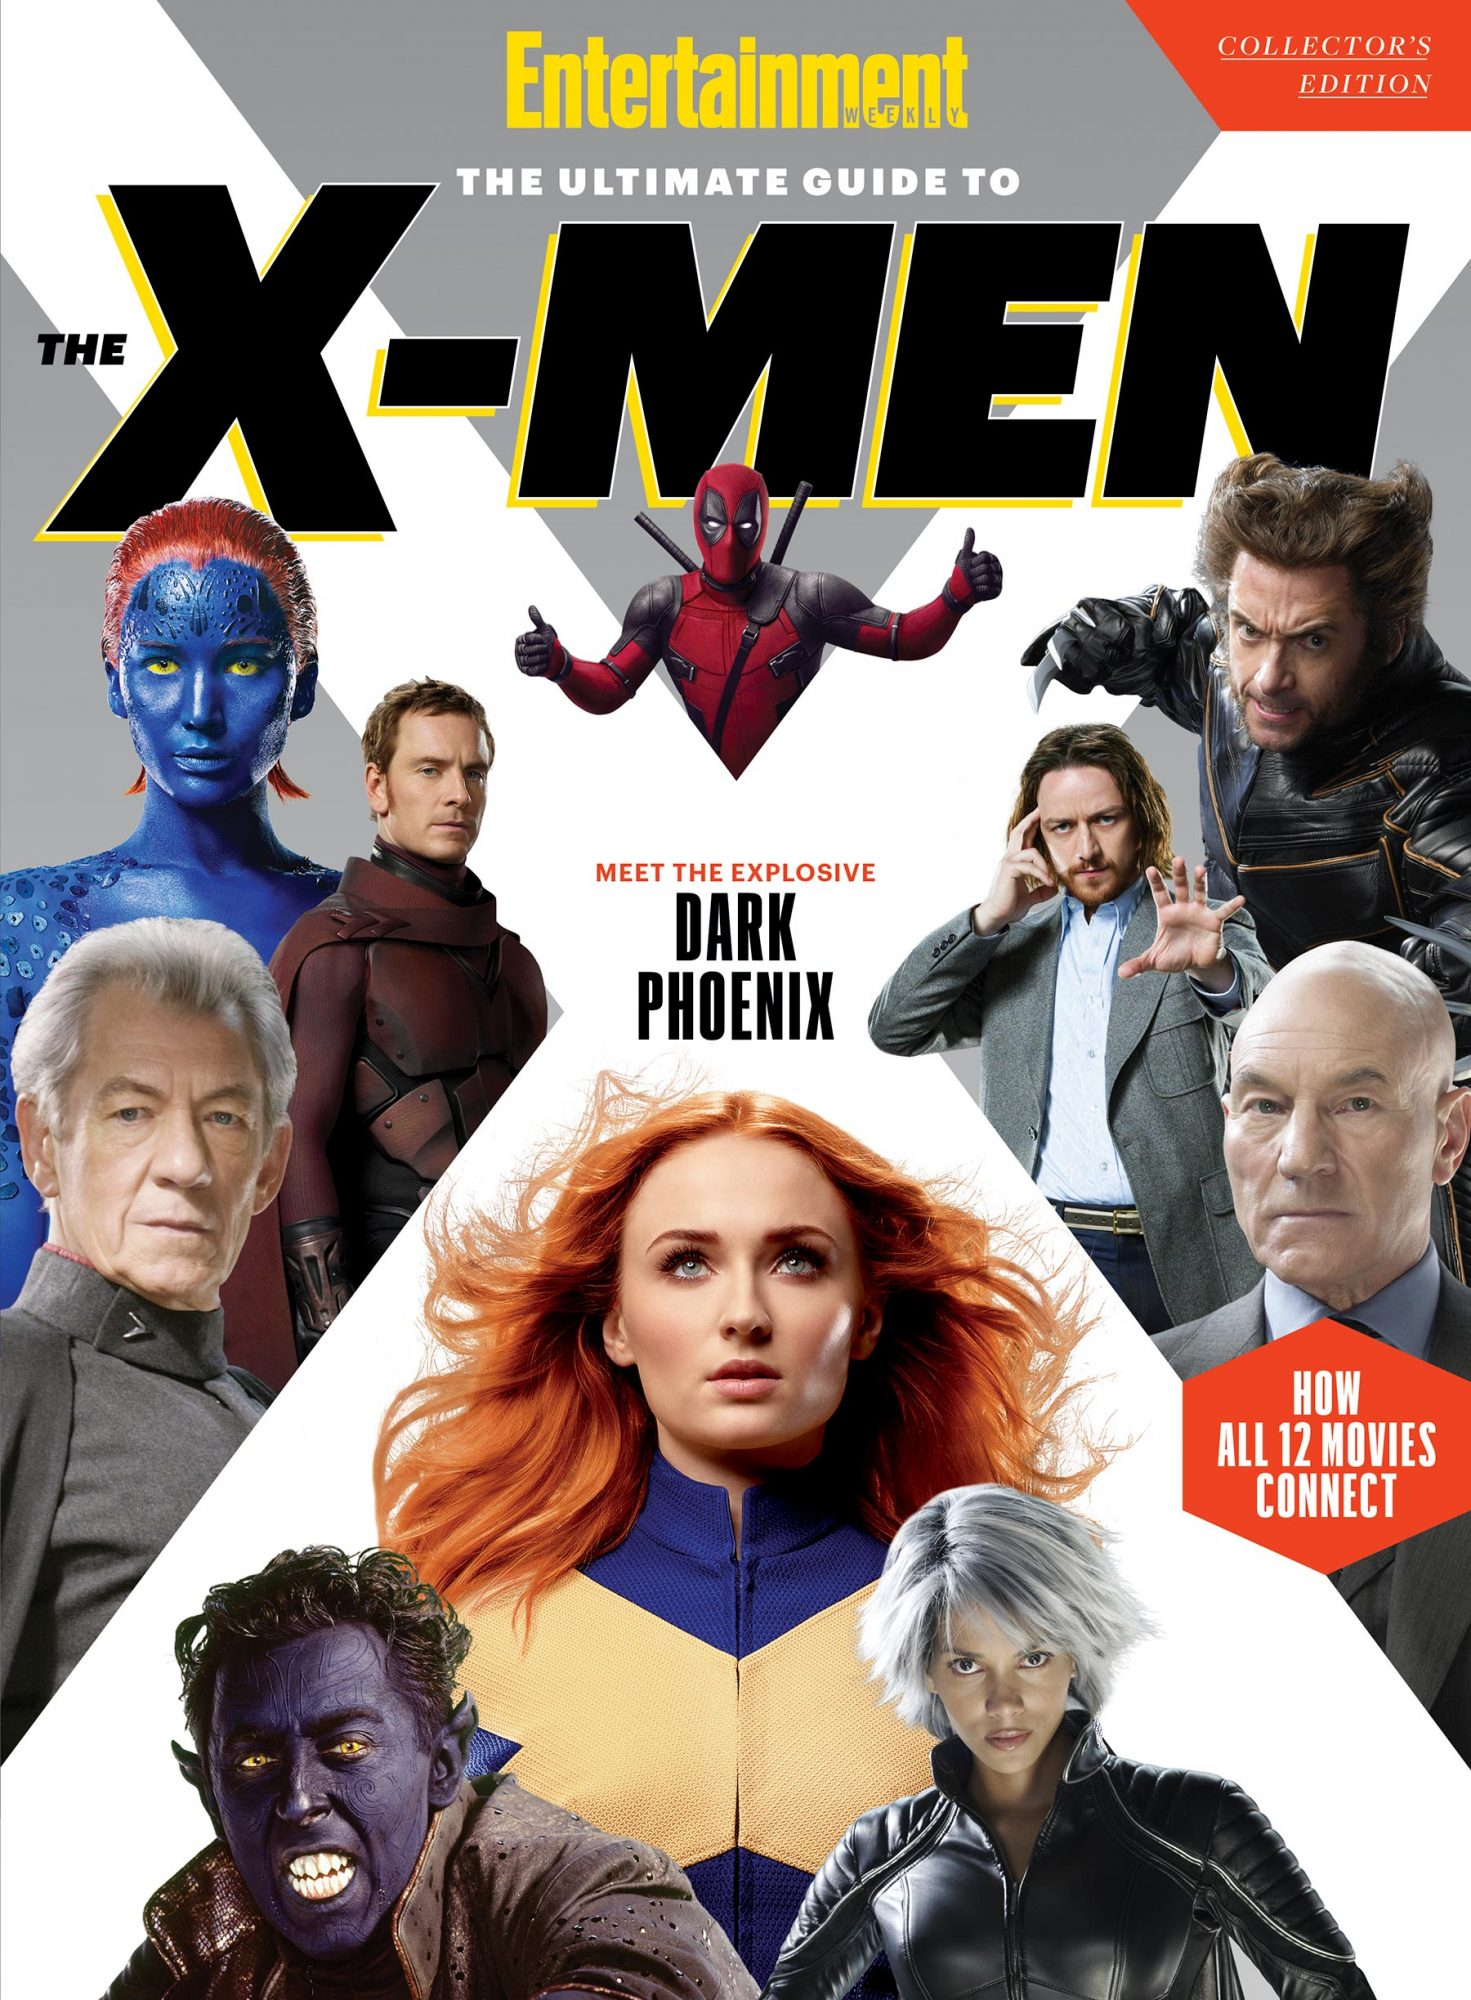 Entertainment Weekly's The Ultimate Guide to The X-Men: Collector's Edition cover CR: EW